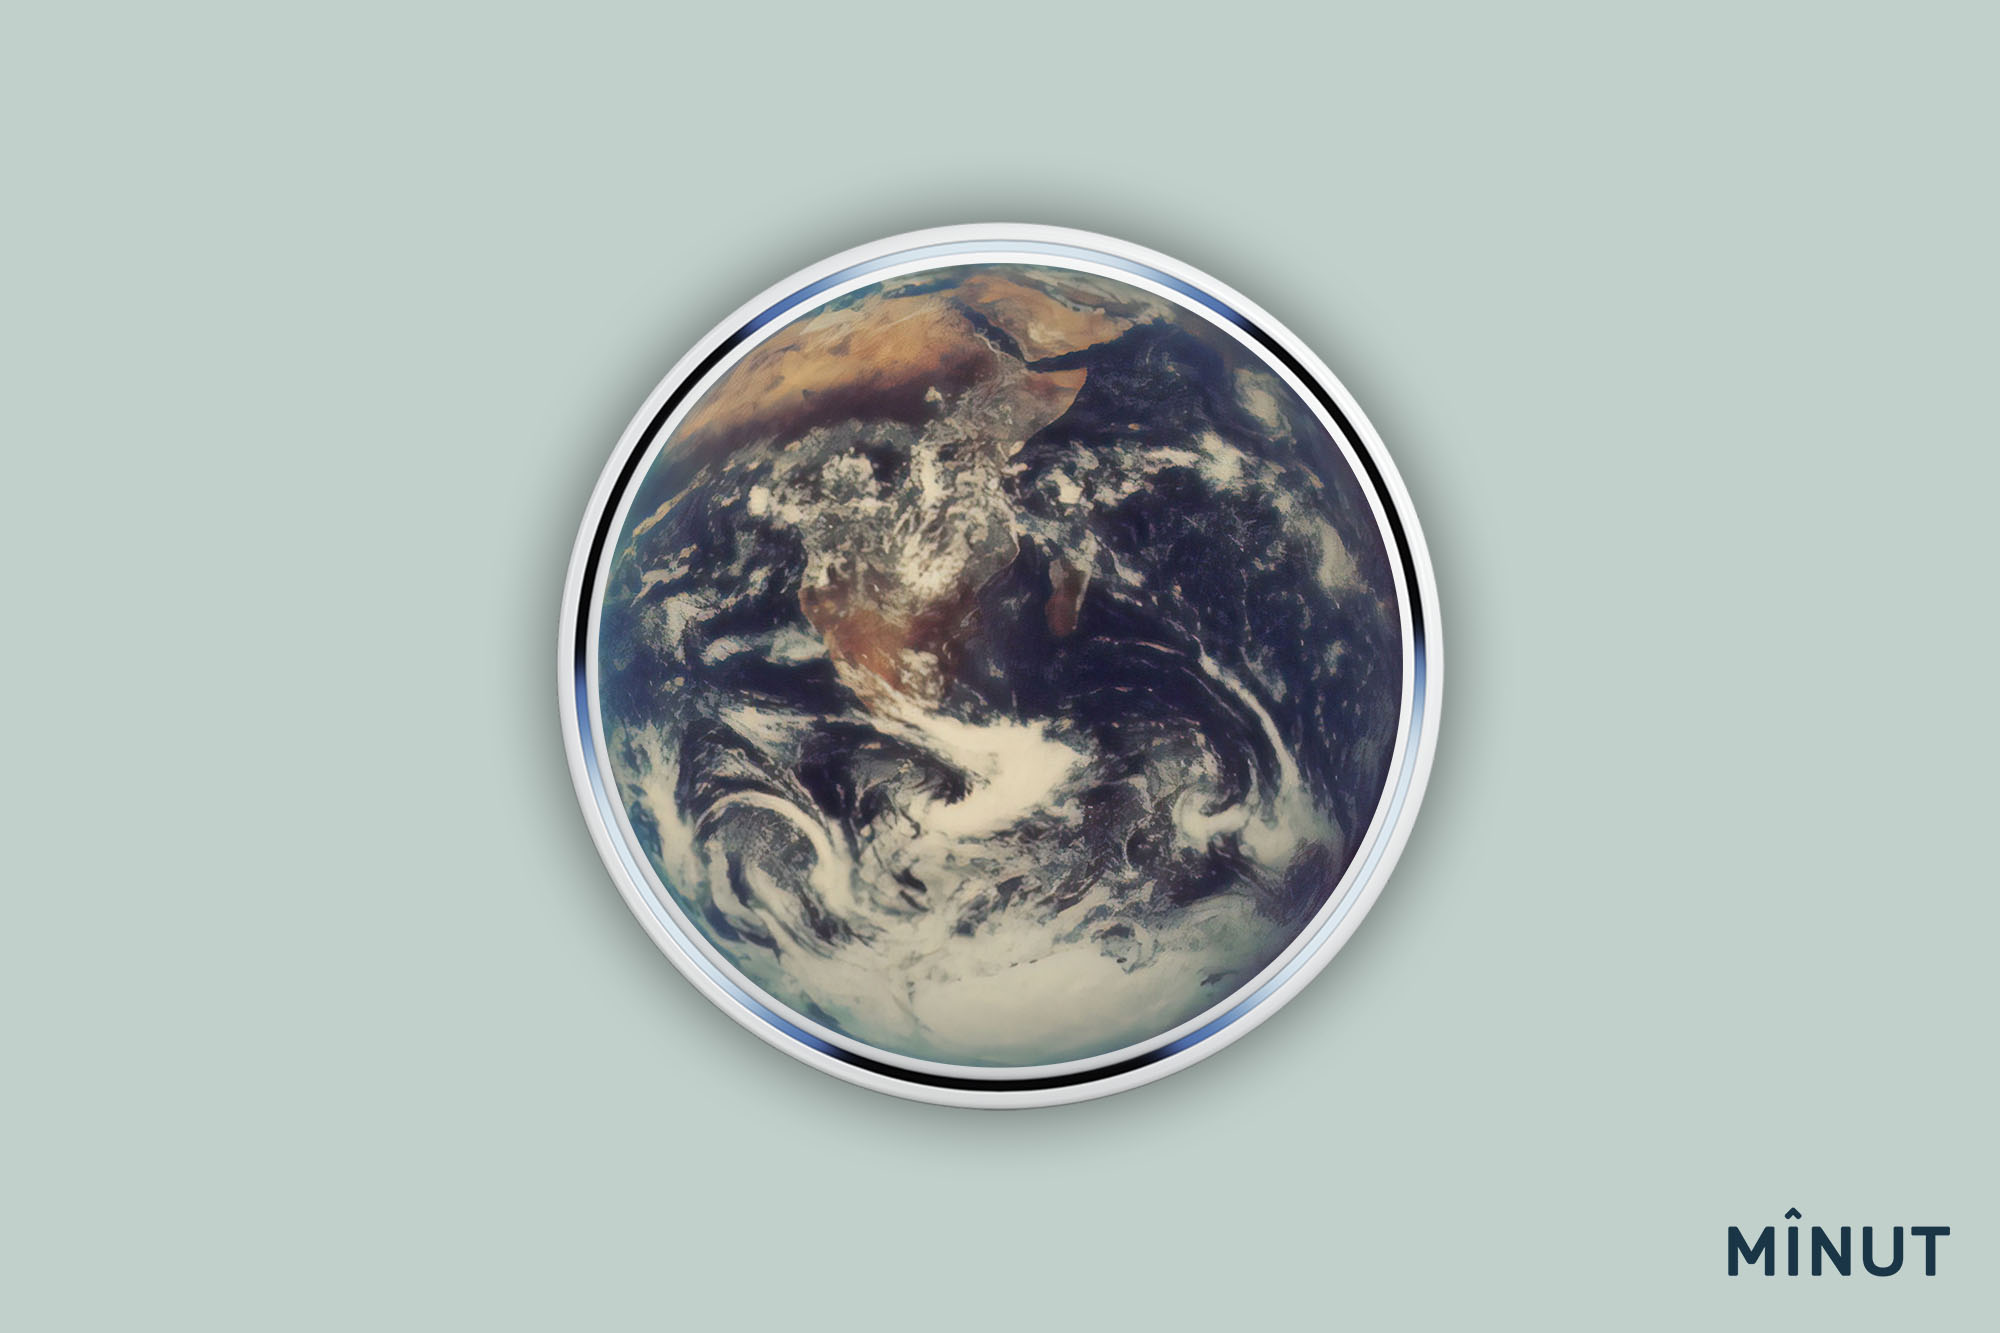 Picture of the Earth placed over a Minut sensor